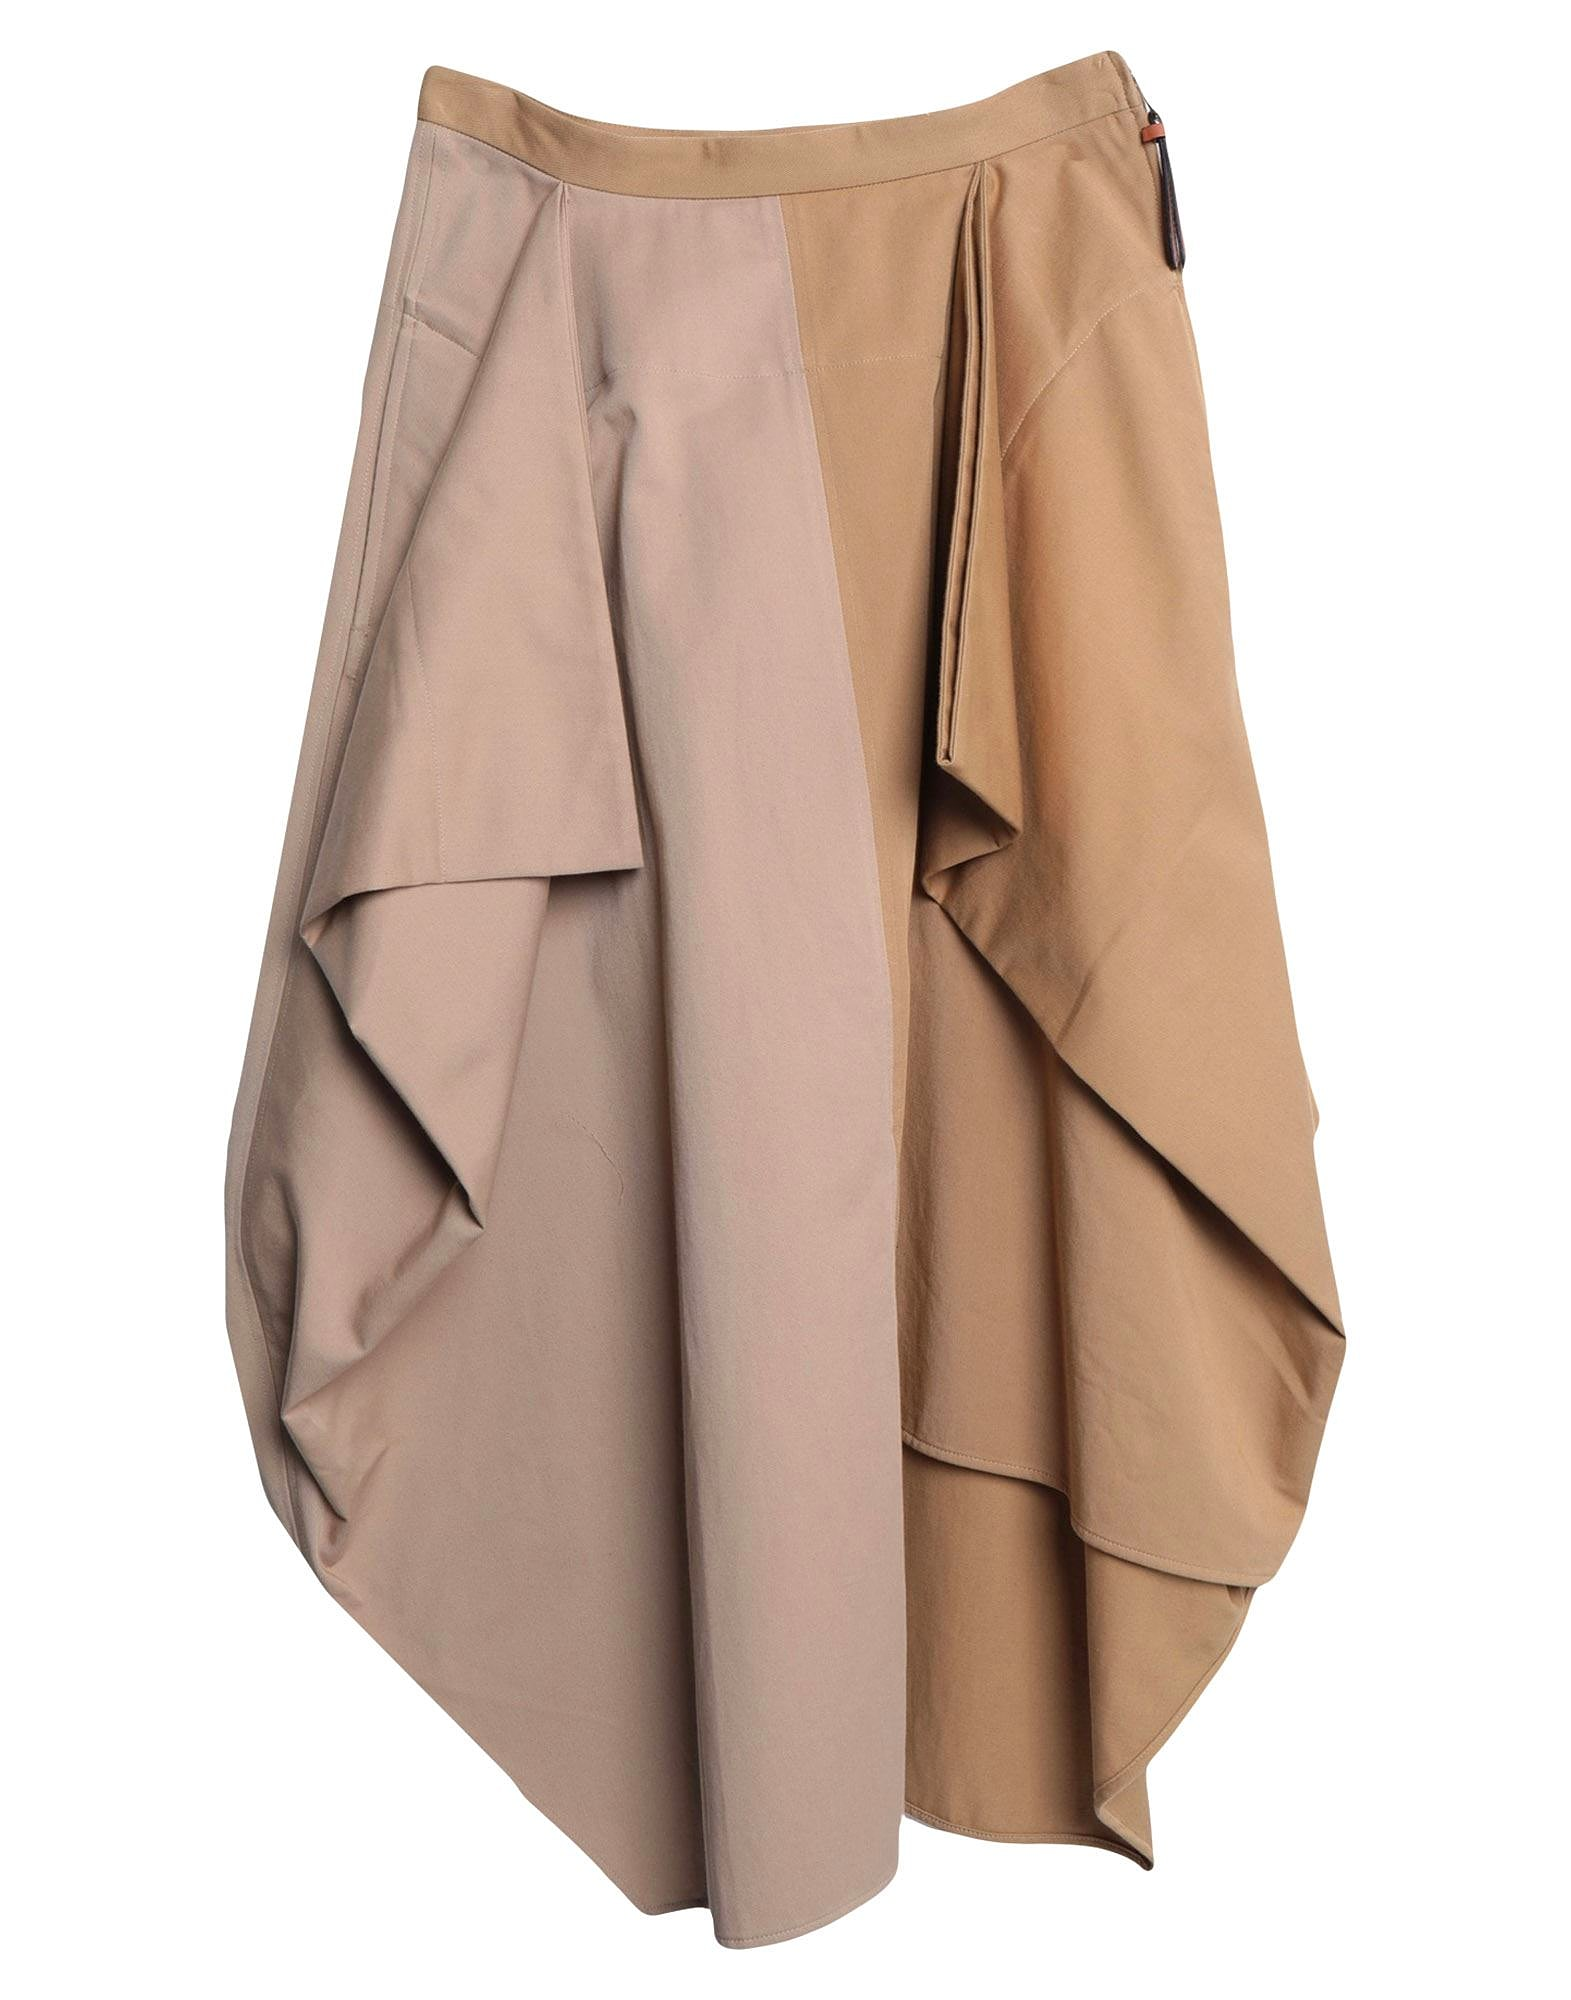 Midi Skirts by LOEWE, available on yoox.com for $420 Olivia Culpo Skirt Exact Product